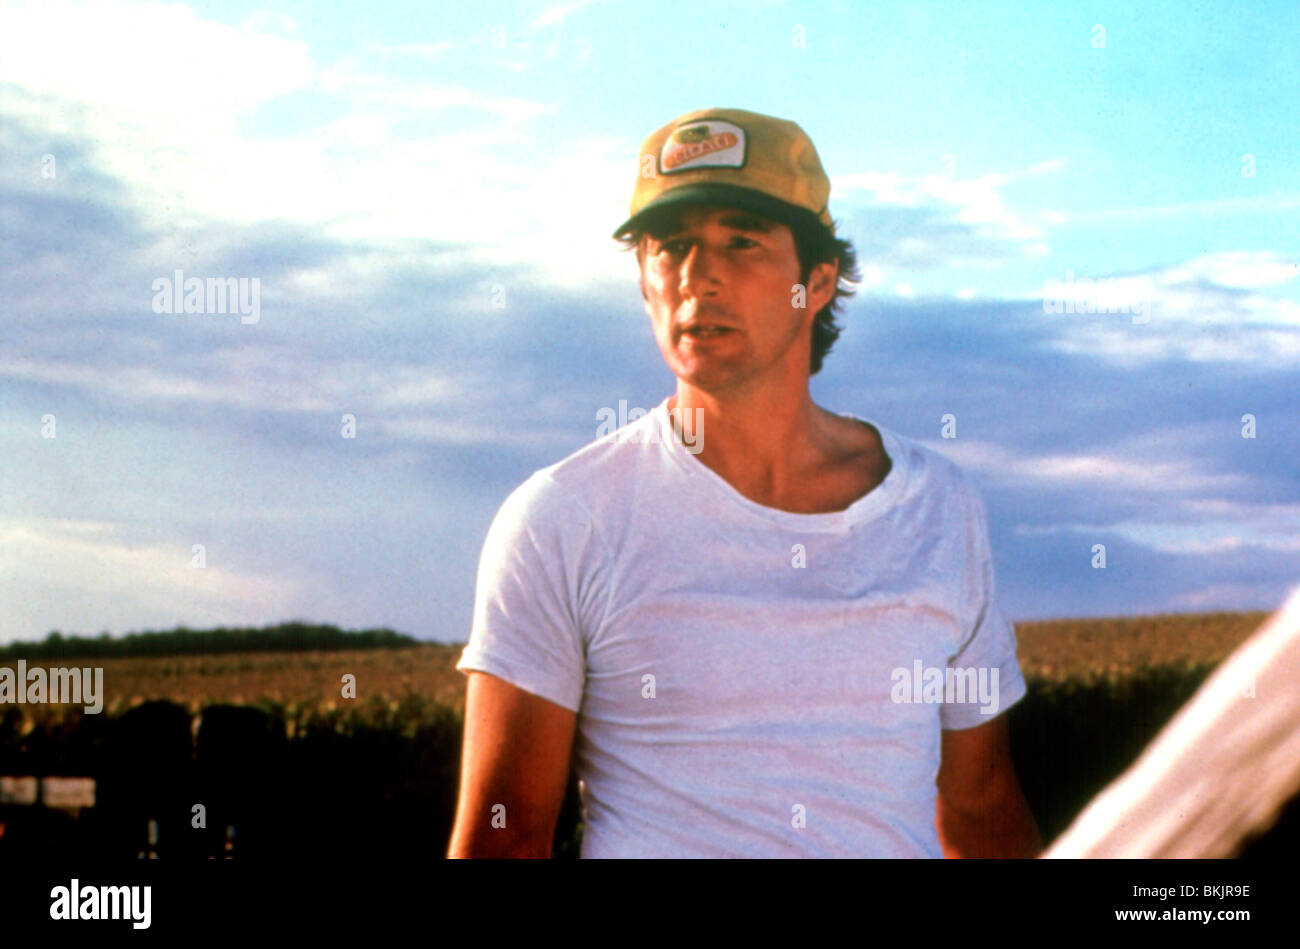 miles from home 1988 richard gere mfhe 004 stock photo